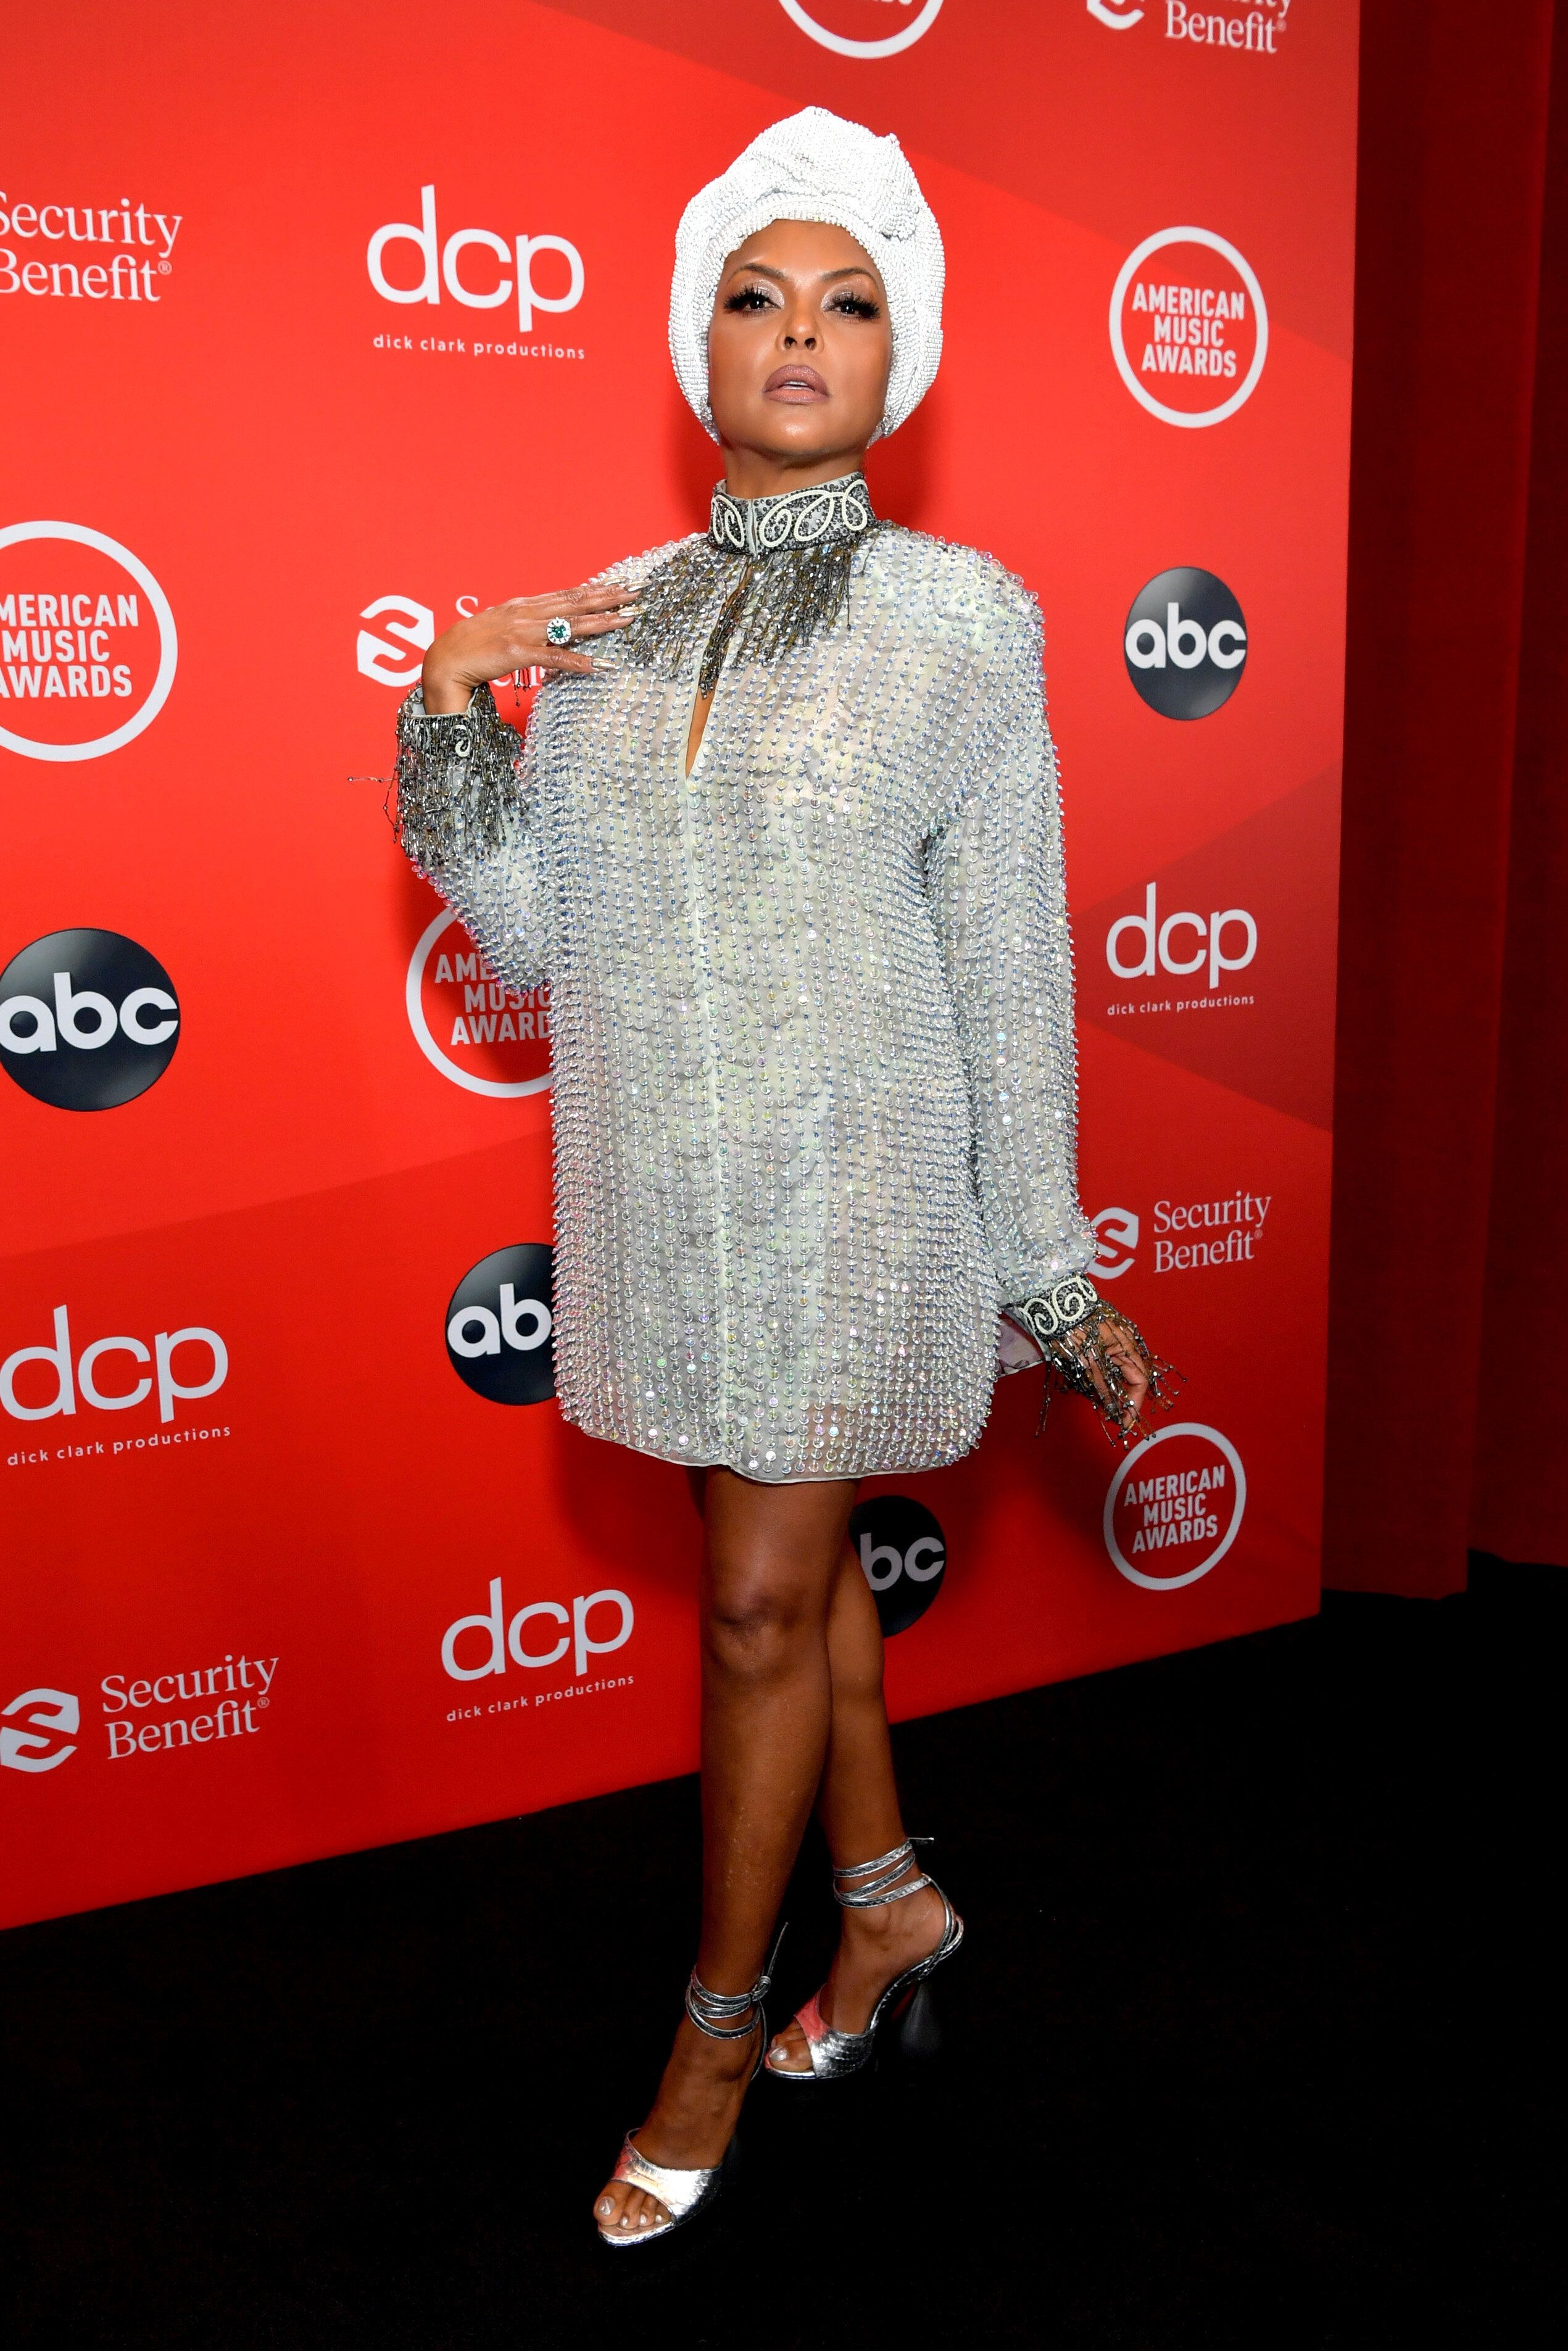 Show host Taraji P. Henson attends the 2020 American Music Awards at the Microsoft Theater on Sunday in Los Angeles, Californ